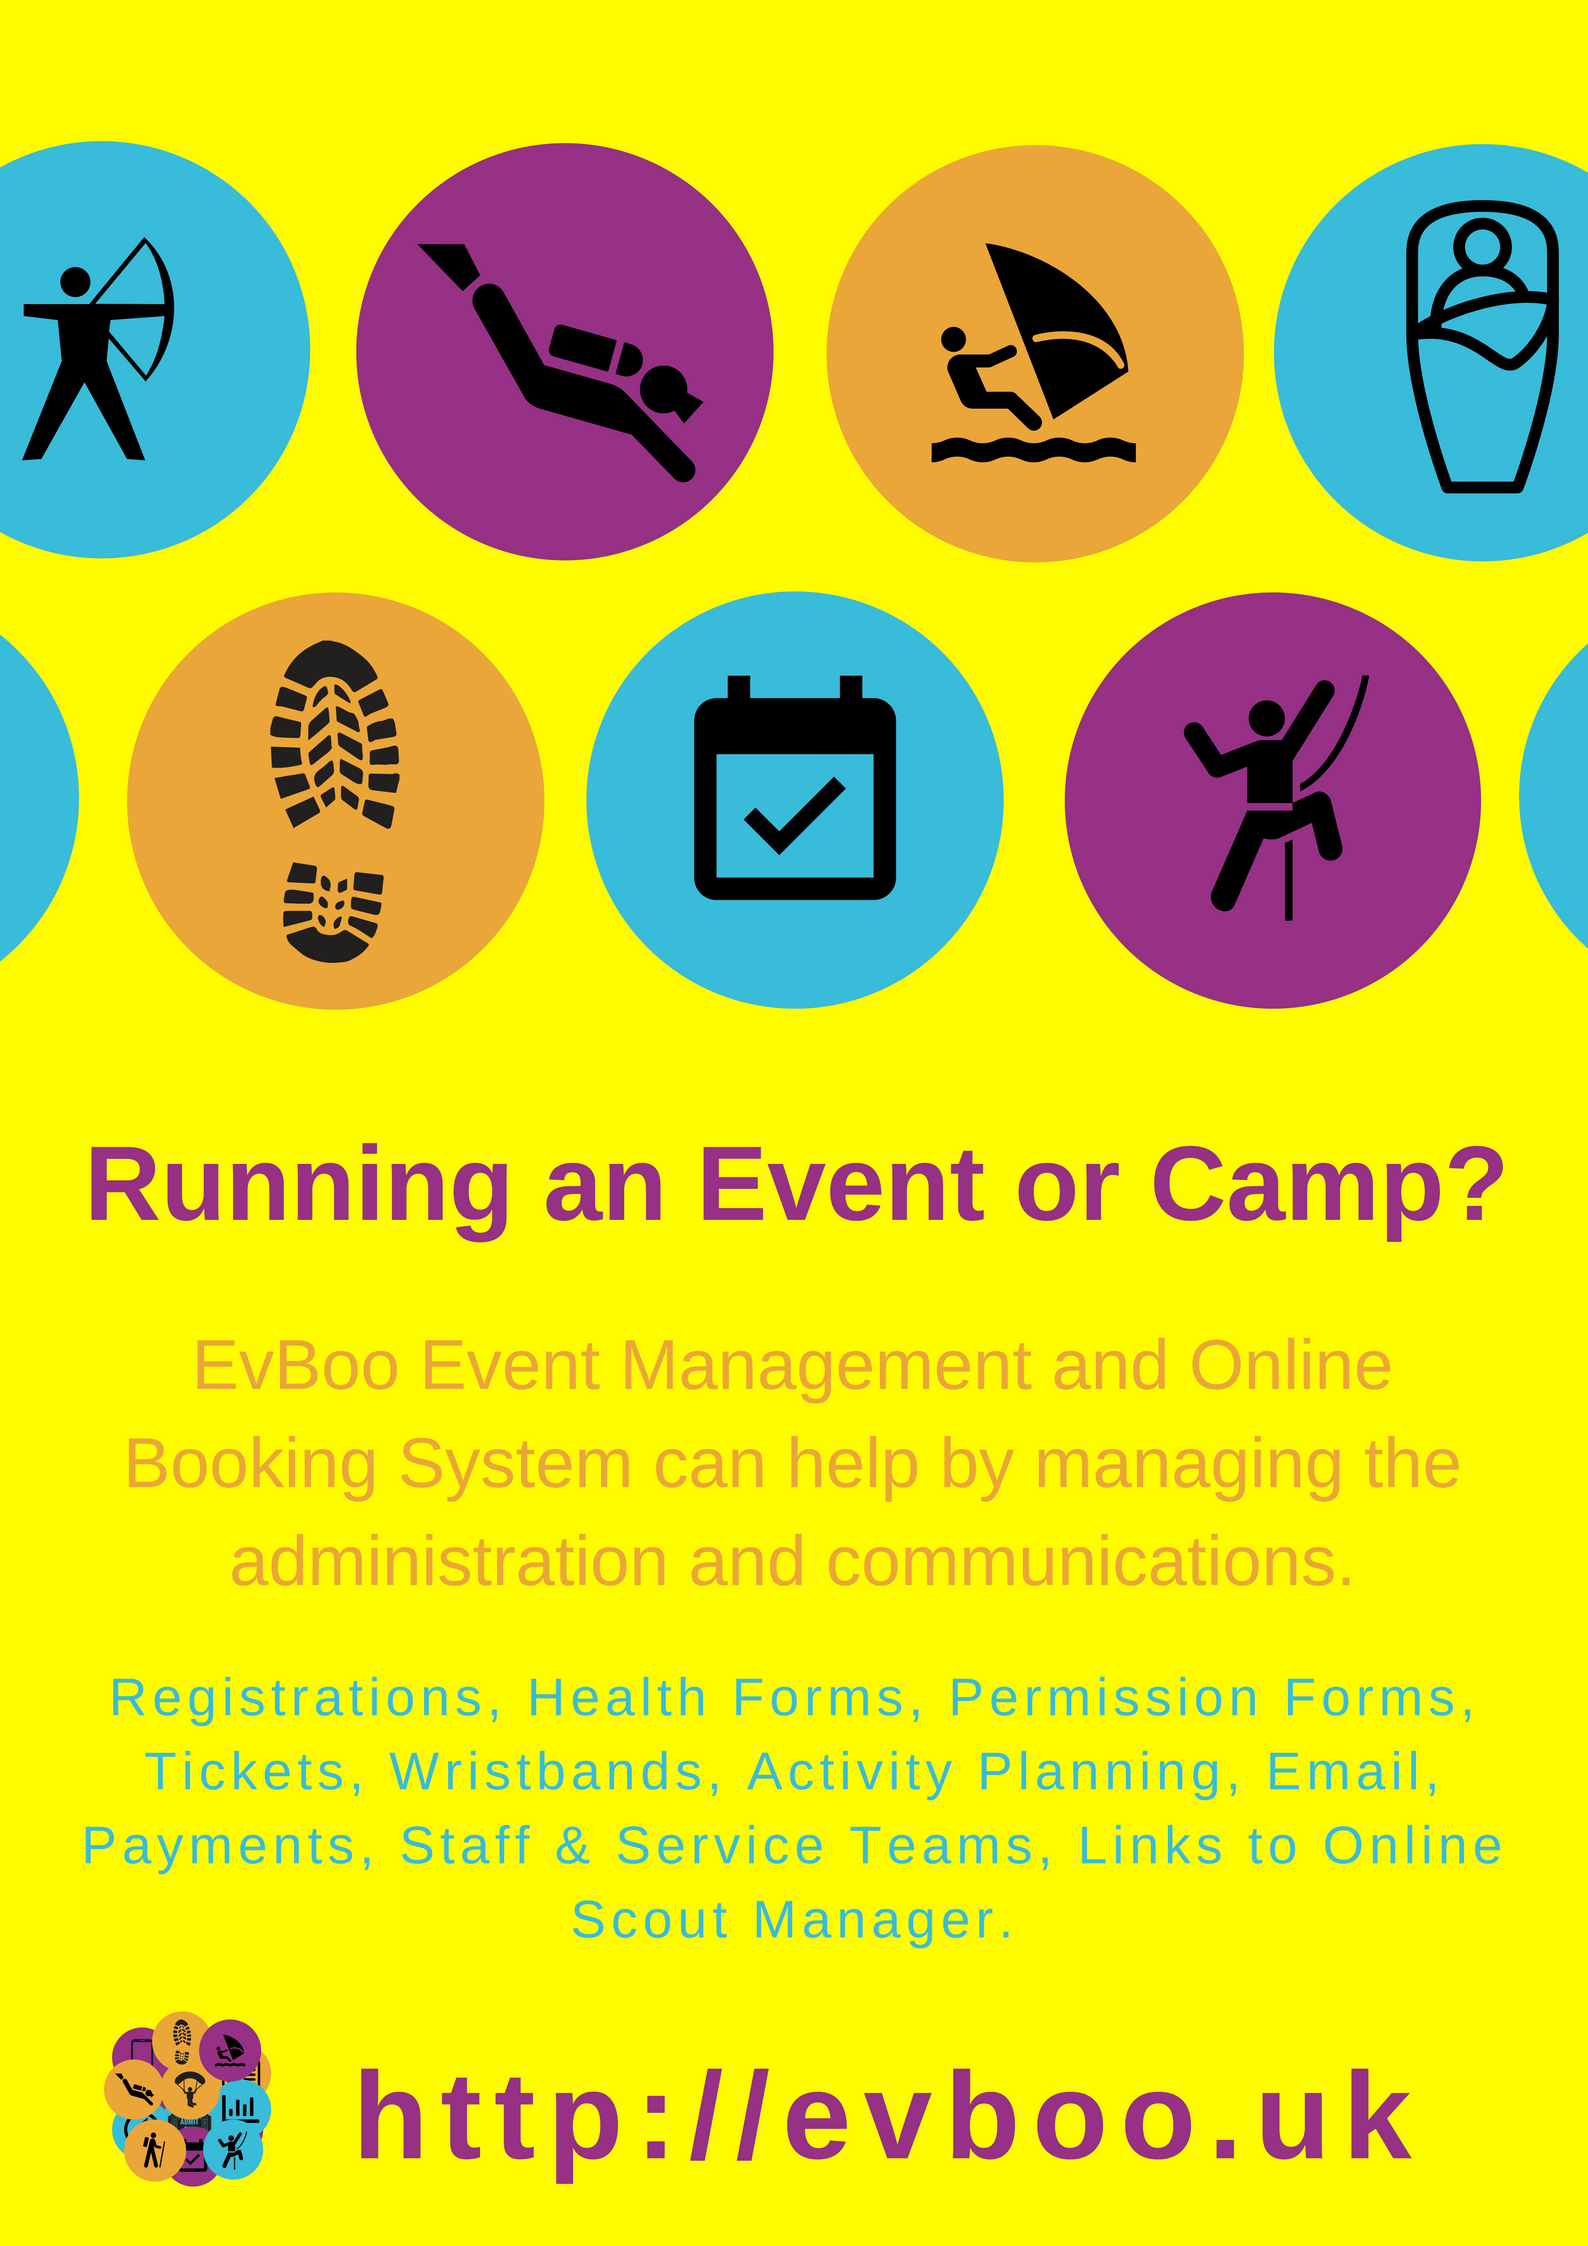 Running an Event or Camp? Get EvBoo